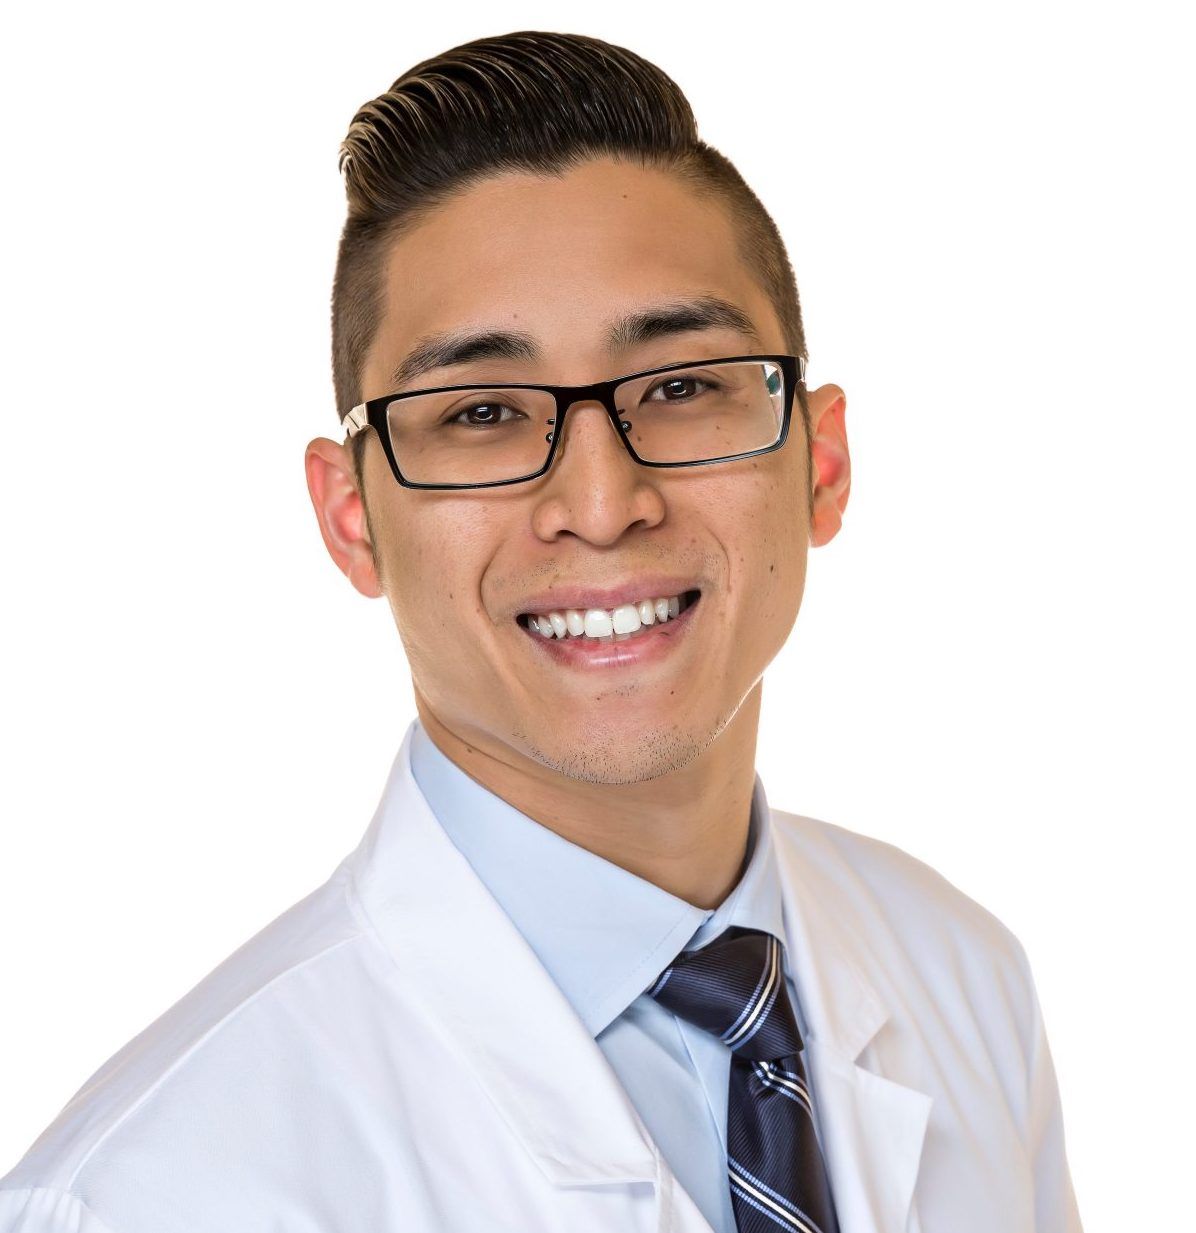 https://dentalopolis.com/wp-content/uploads/2018/12/Doctor-Vincent-Nguyen-Square.jpg